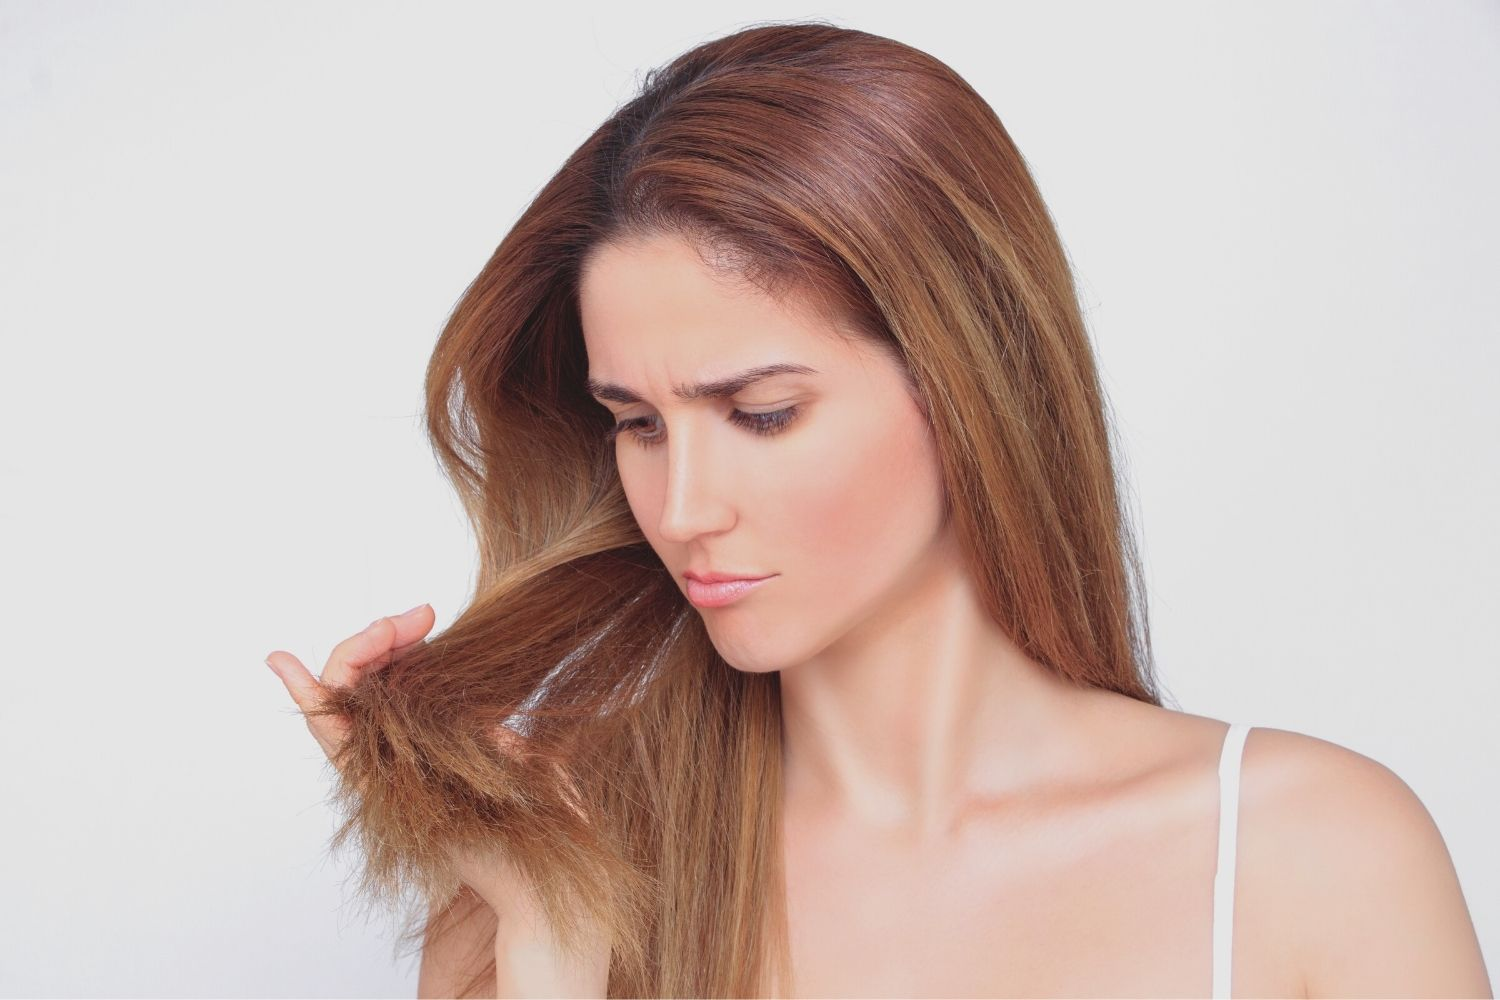 Is Your Hair Damaged? Here's How to Treat Each Issue